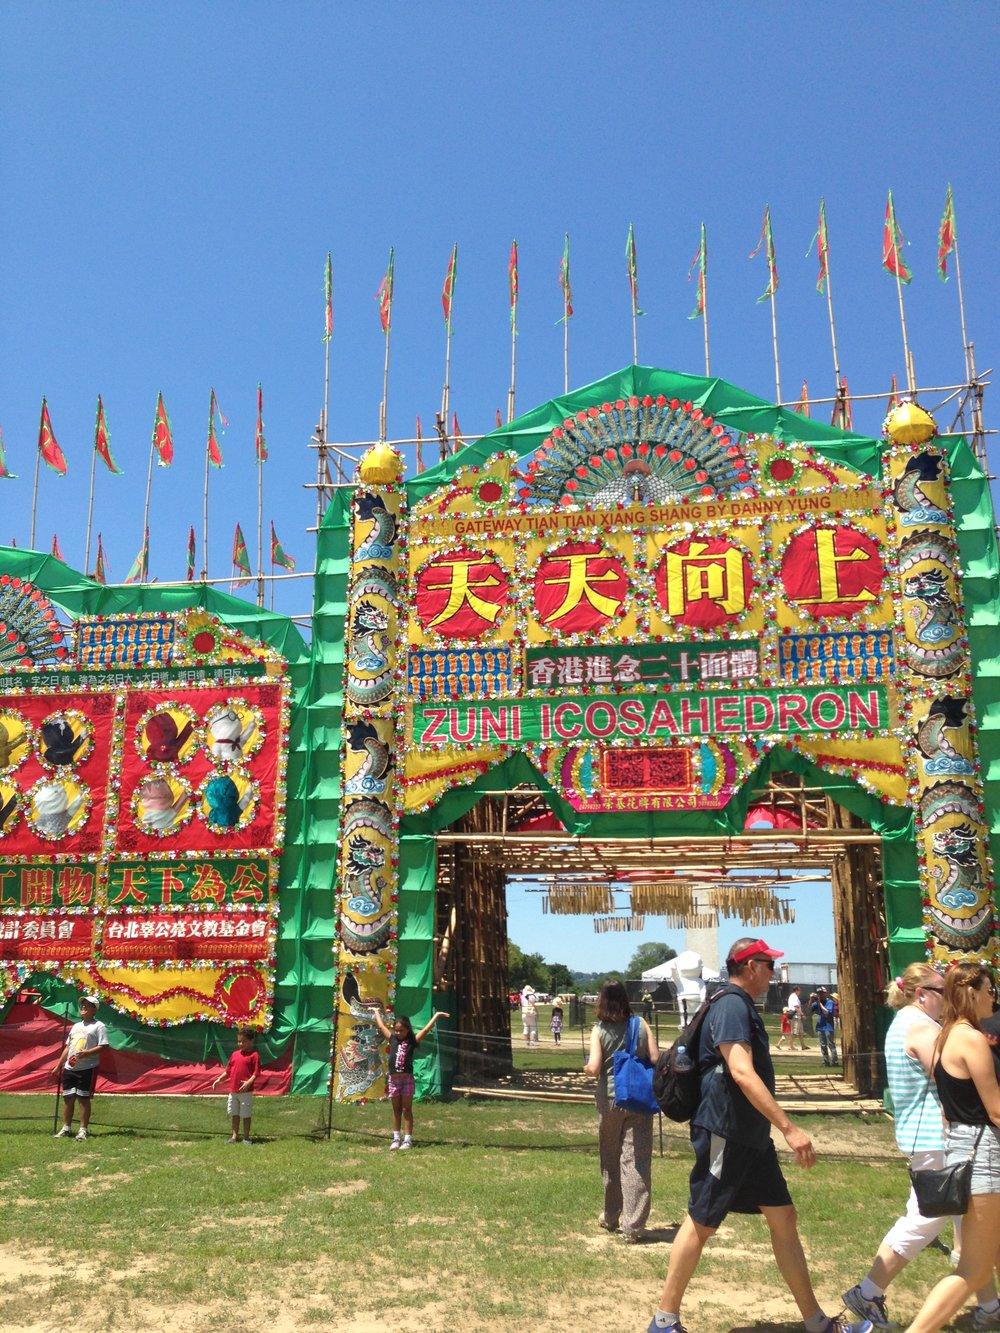 An enormous gate at the Smithsonian Folklife Festival.